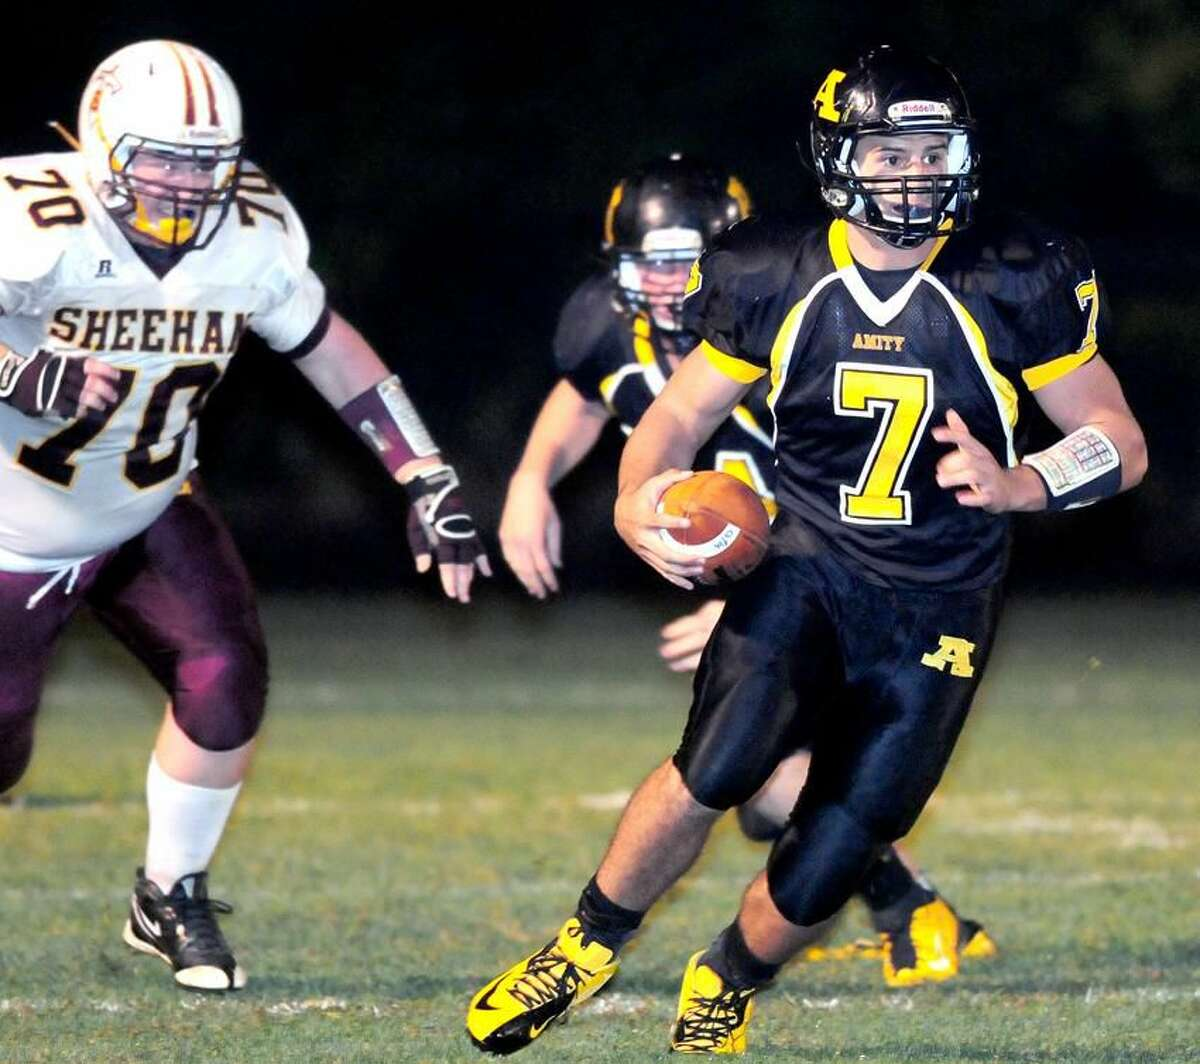 Amity quarterback James Semmonella (right) finds a big hole in the first half against Sheehan on 9/21/2012. Photo by Arnold Gold/New Haven Register